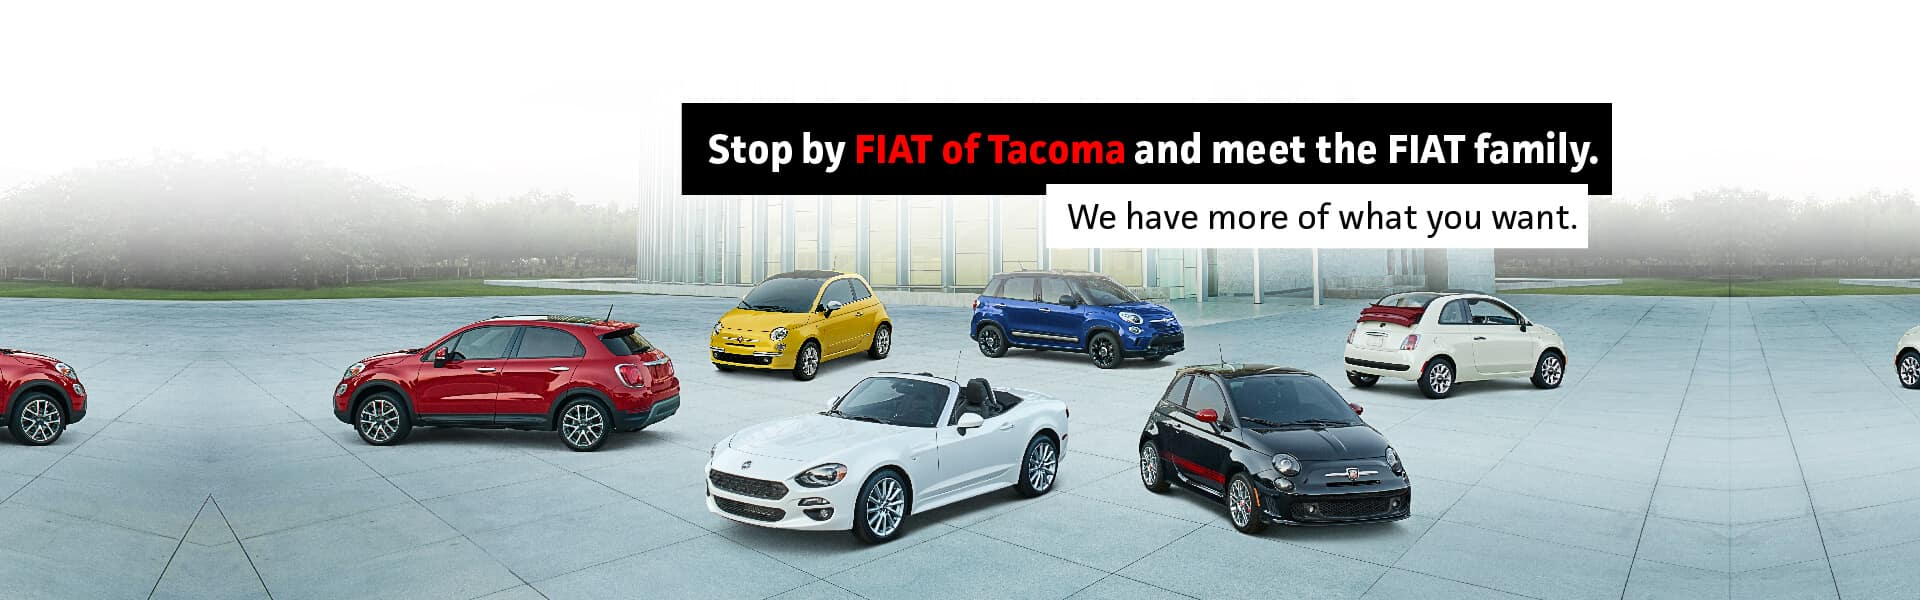 FIAT of Tacoma | New & Used Car Dealer in Tacoma, WA near Lakewood